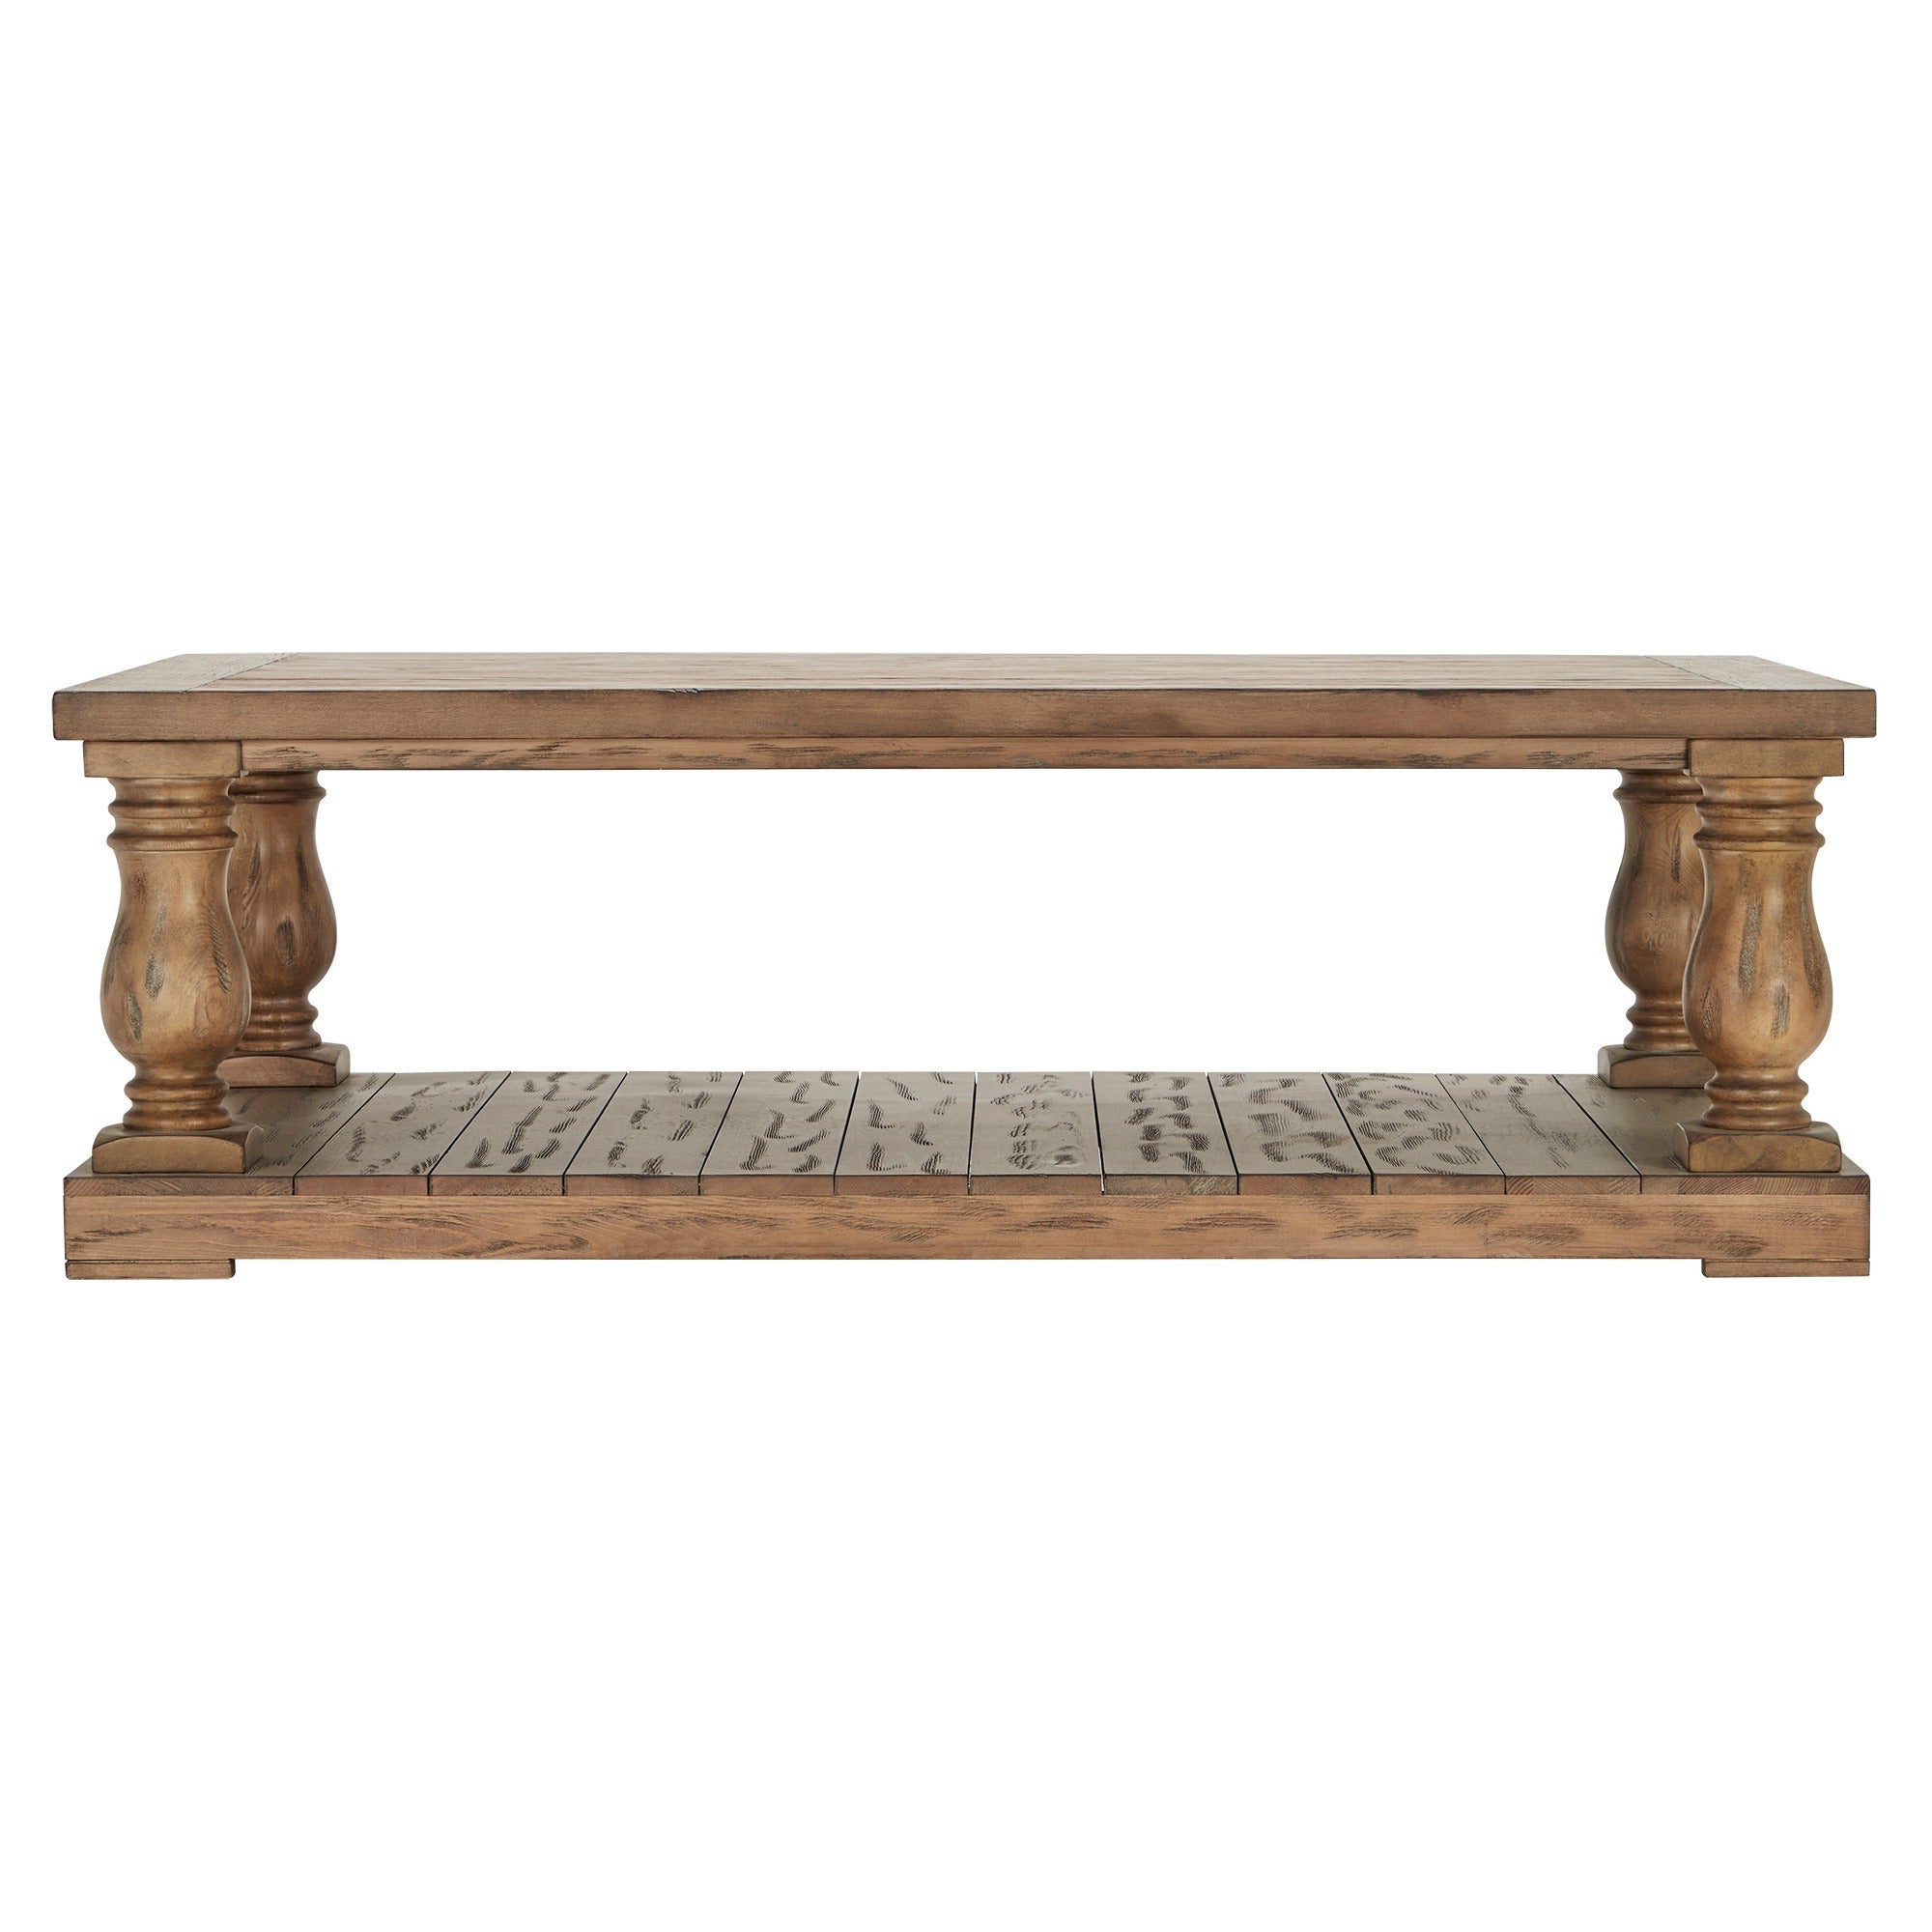 Edmaire Rustic Pine Baluster 55 Inch Coffee Tableinspire Q Artisan With Newest Edmaire Rustic Pine Baluster Coffee Tables (Gallery 7 of 20)